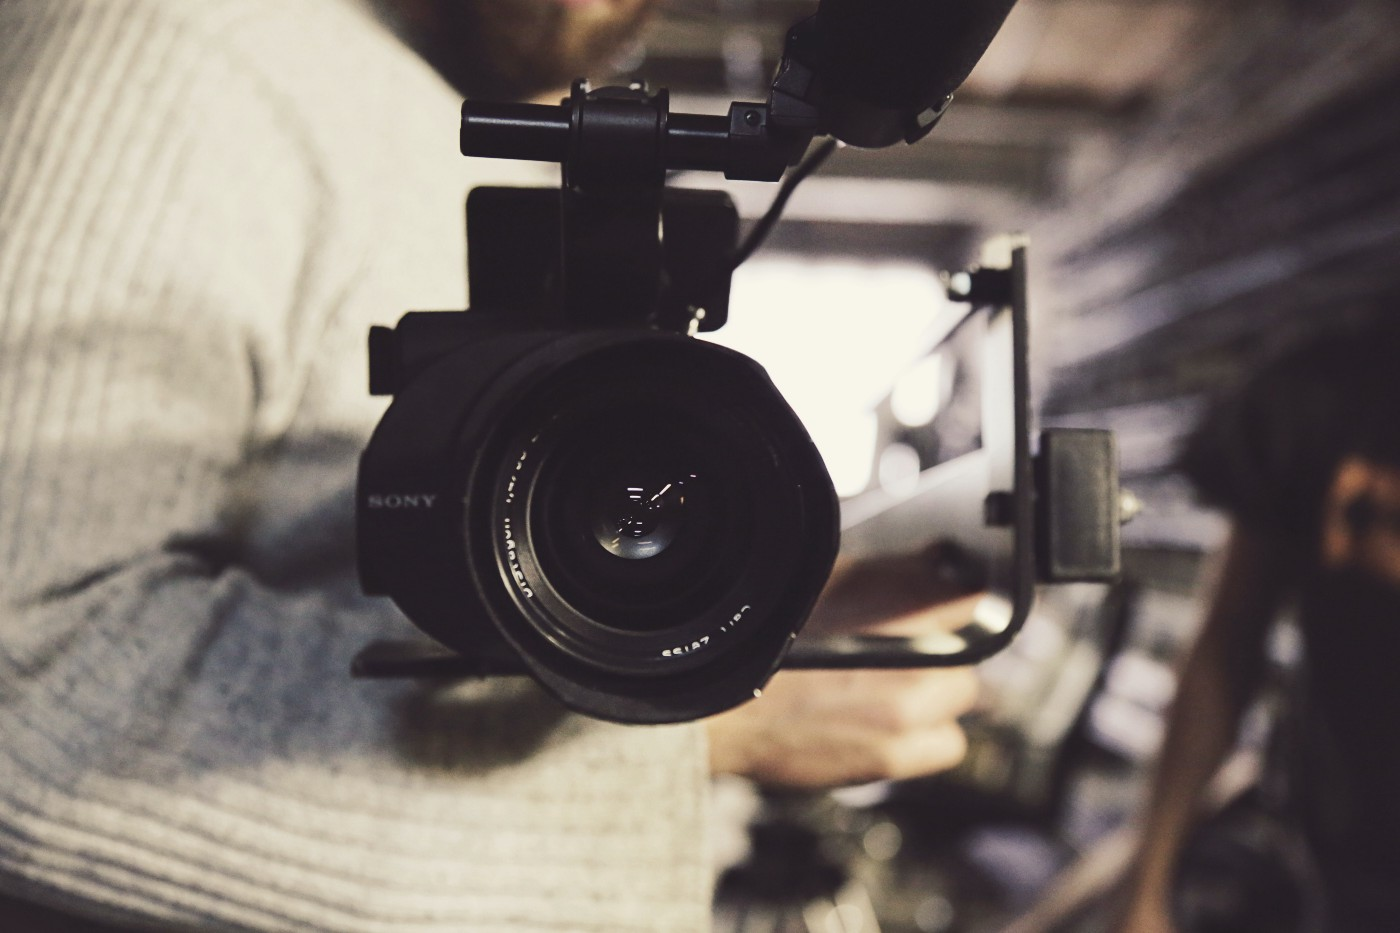 Camera lens photography behind the scenes footage on a shoot with team from Food Story Media digital media agency.